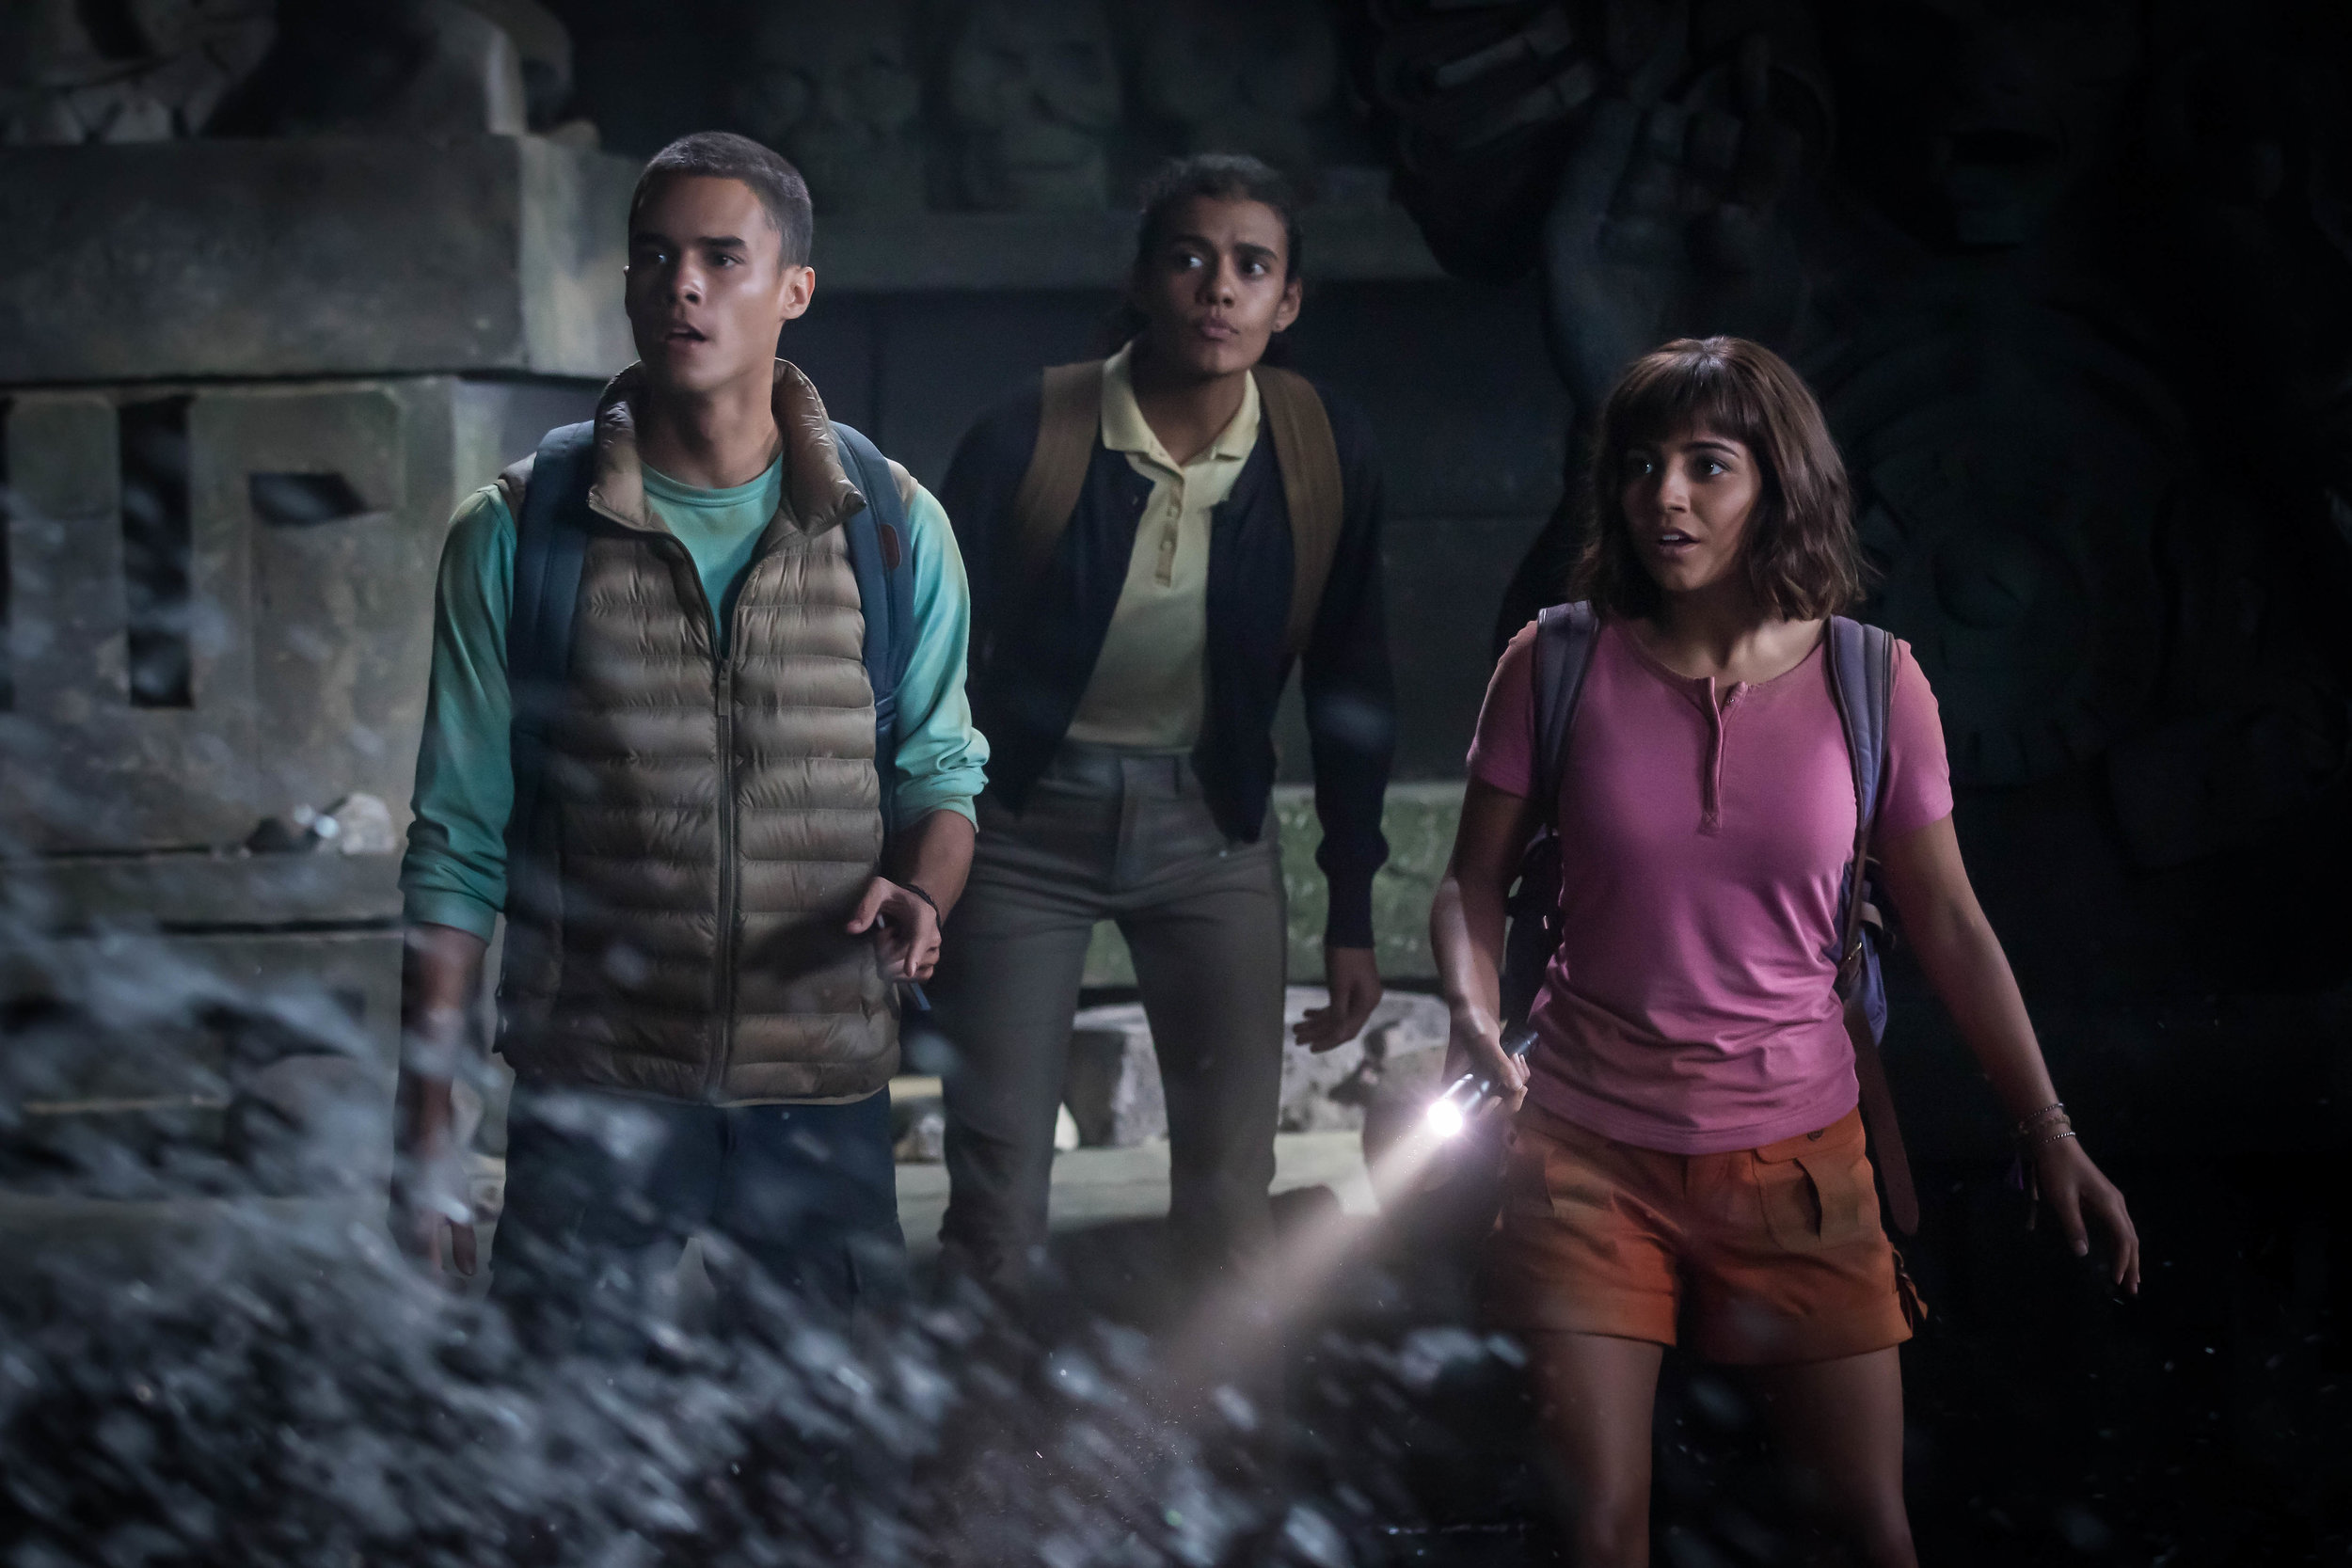 """Dora (Isabela Moner, right), along with her cousin Diego (Jeff Wahlberg, left) and their classmate Sammy (Madeleine Madden, center), are swept up in an adventure in """"Dora and the Lost City of Gold,"""" based on the Nickelodeon children's show """"Dora the Explorer."""" (Photo by Vince Valitutti, courtesy of Paramount Pictures.)"""